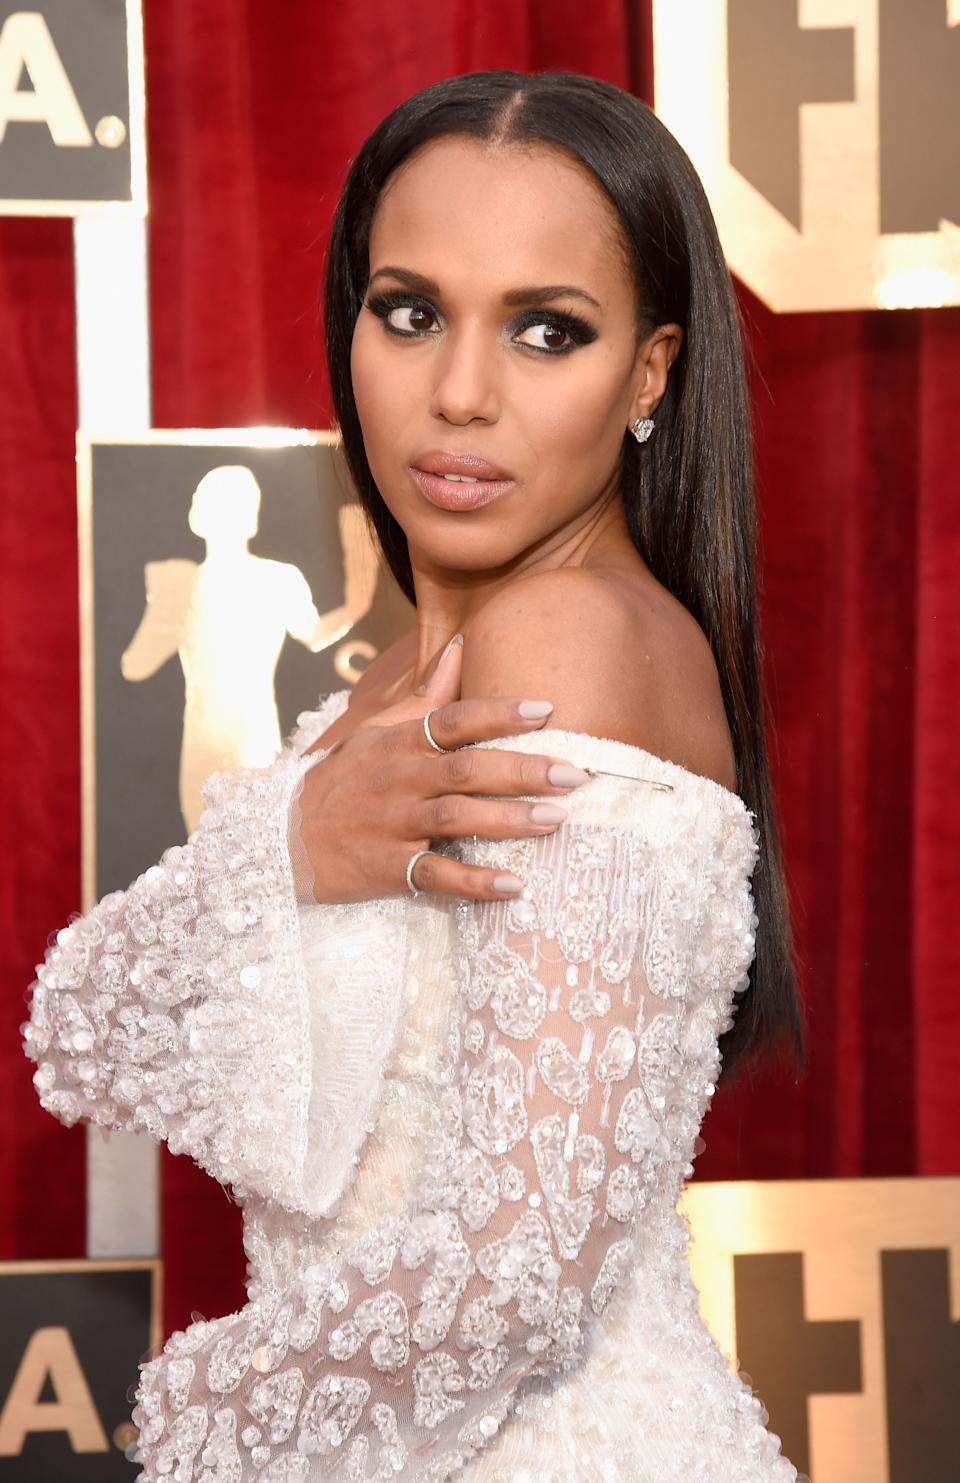 """Kerry Washington wears a safety pin during the 23rd annual Screen Actors Guild Awards.<br /><br />""""I'll be wearing one of these tonight. On my arm. To show solidarity. We will not stop fighting for our safety & the safety of our fellow citizens and human beings.Actors are activists, no matter what, because we embody the worth and humanity of all people."""""""